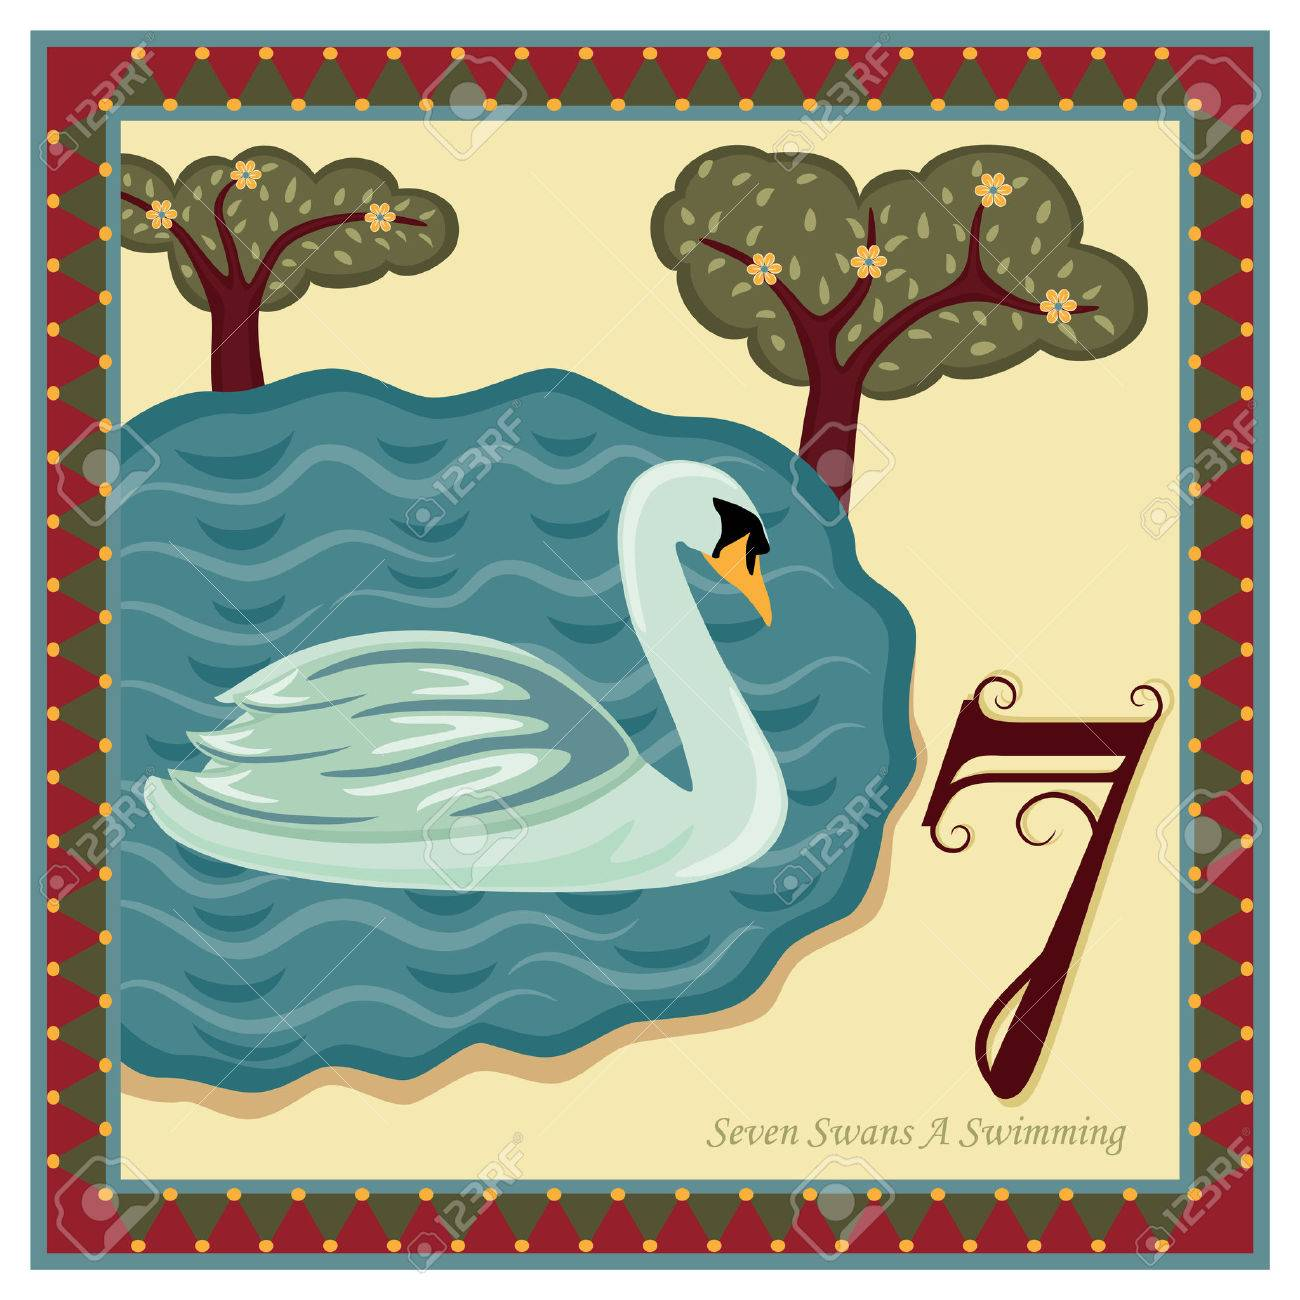 hight resolution of the 12 days of christmas 7th day seven swans a swimming stock vector